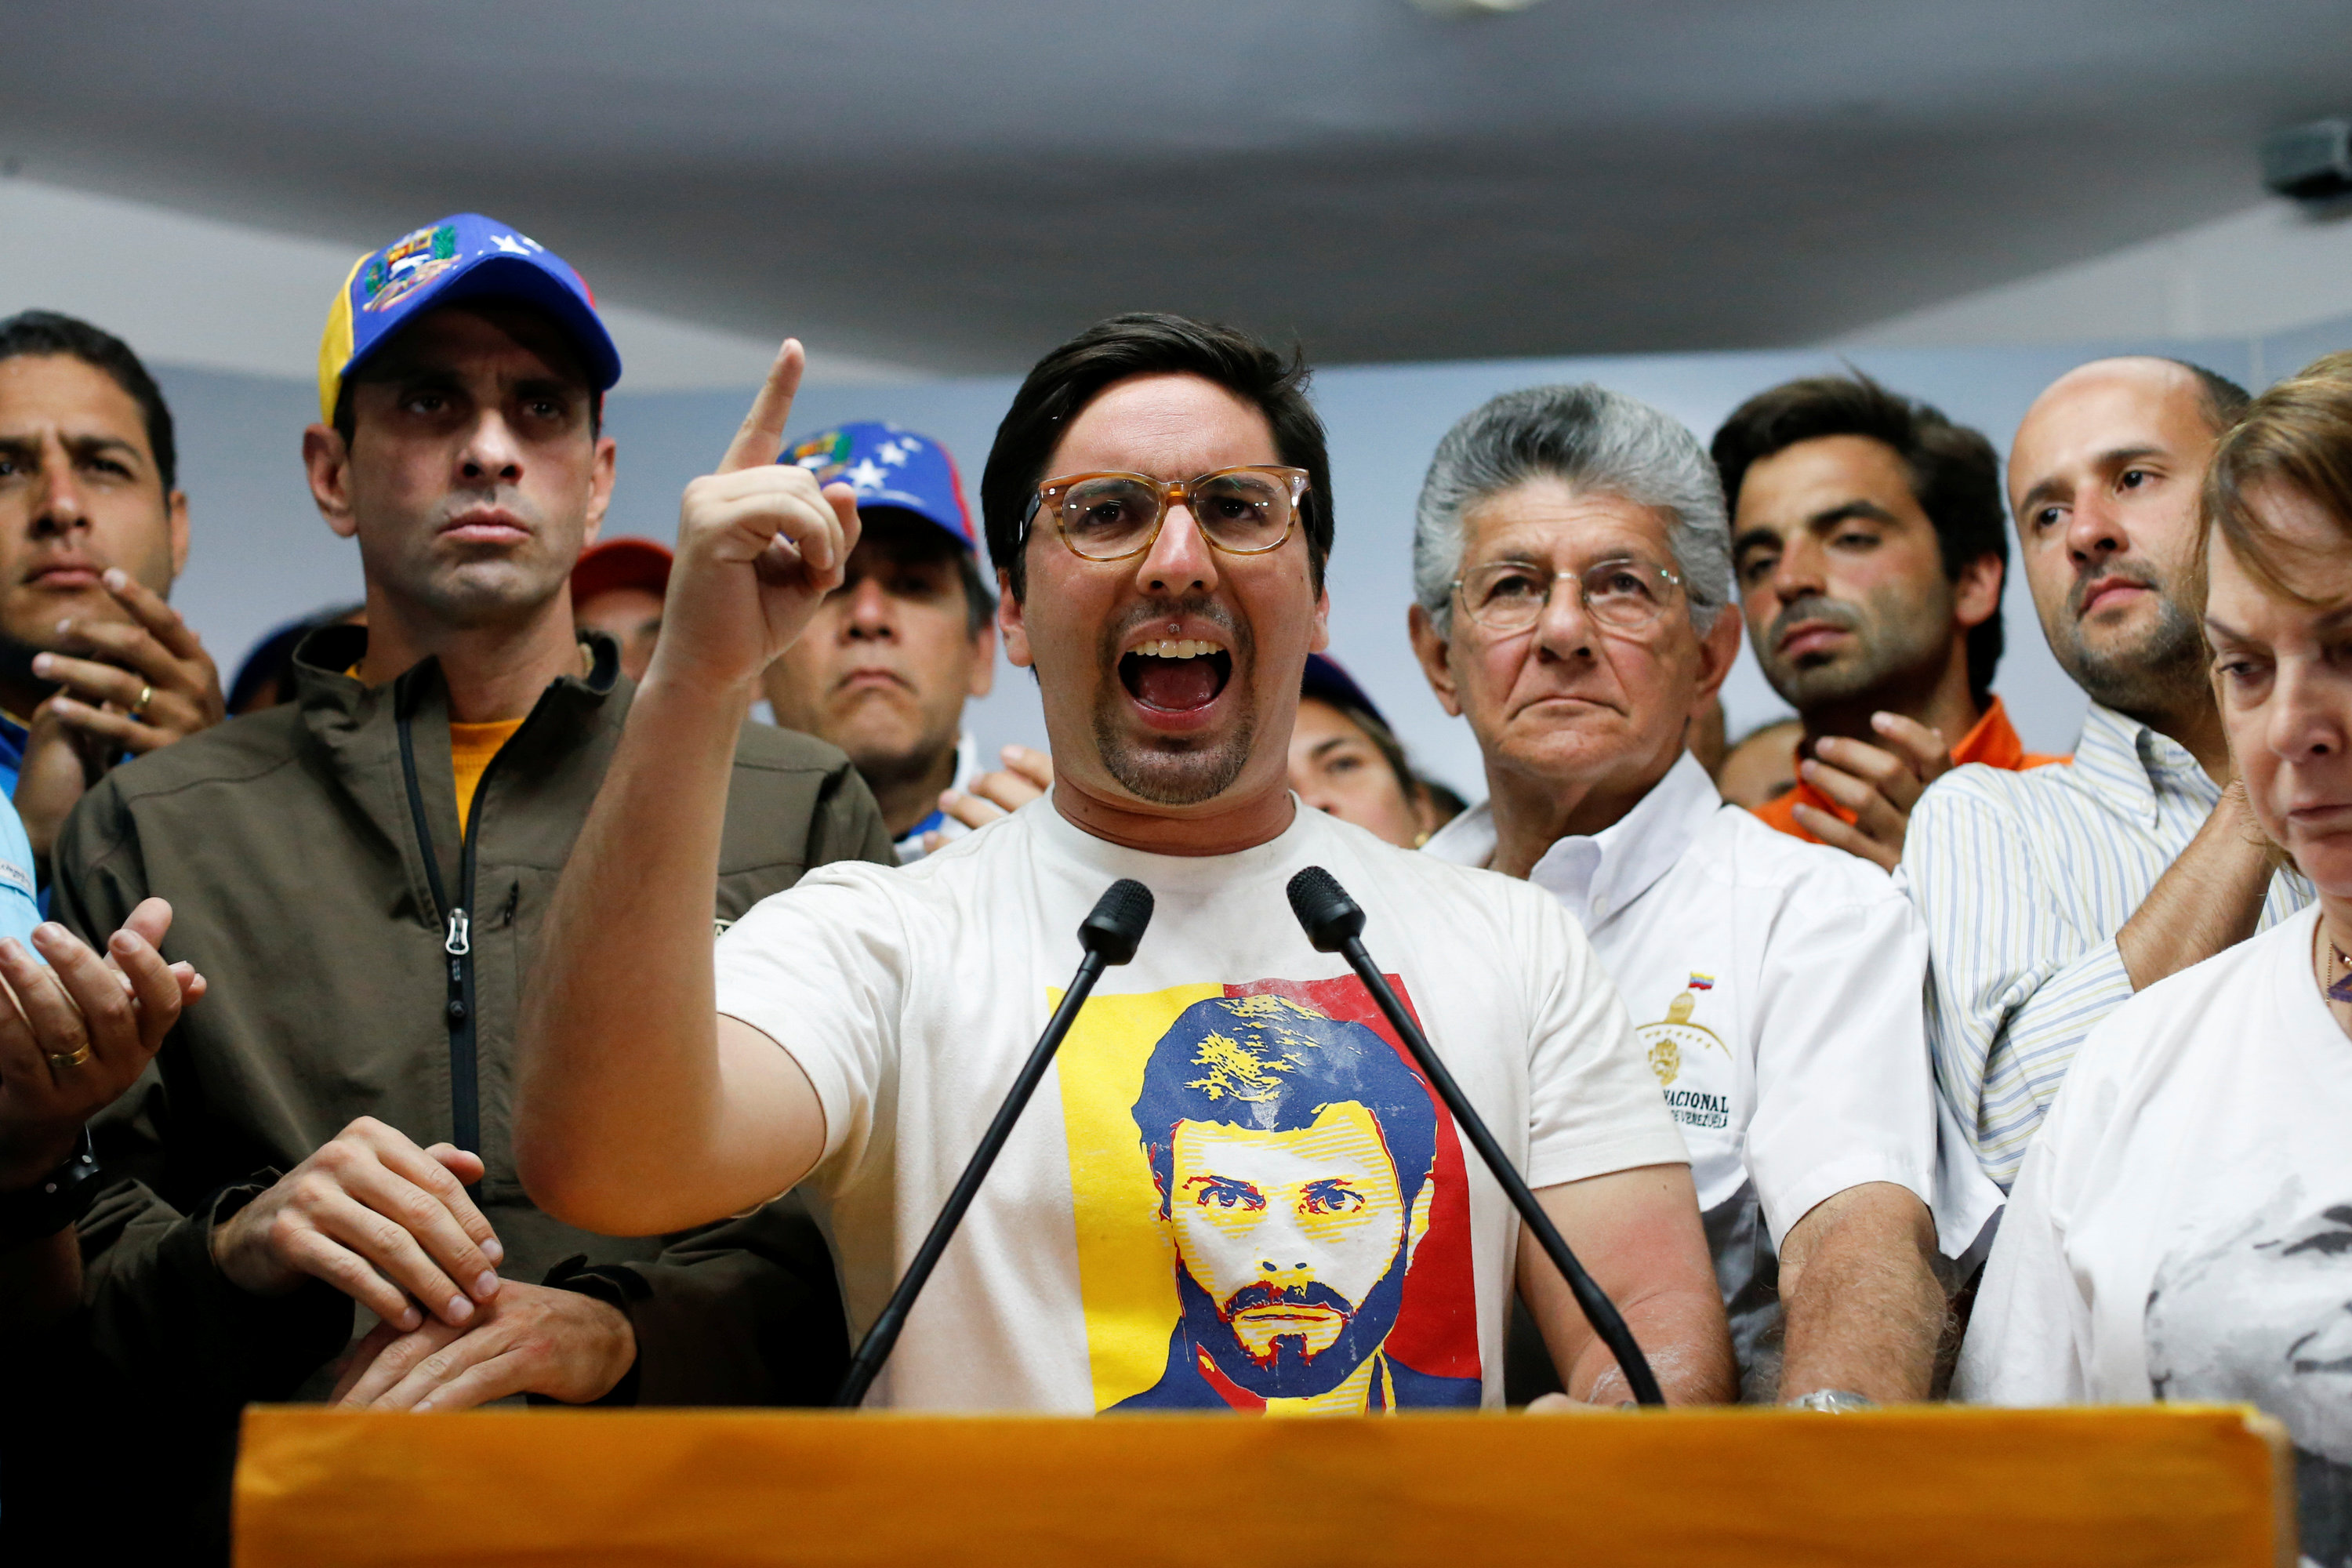 Freddy Guevara (C), First Vice President of the National Assembly and deputy of the opposition party Popular Will (Voluntad Popular), speaks during a news conference in Caracas, Venezuela, April 6, 2017. REUTERS/Carlos Garcia Rawlins